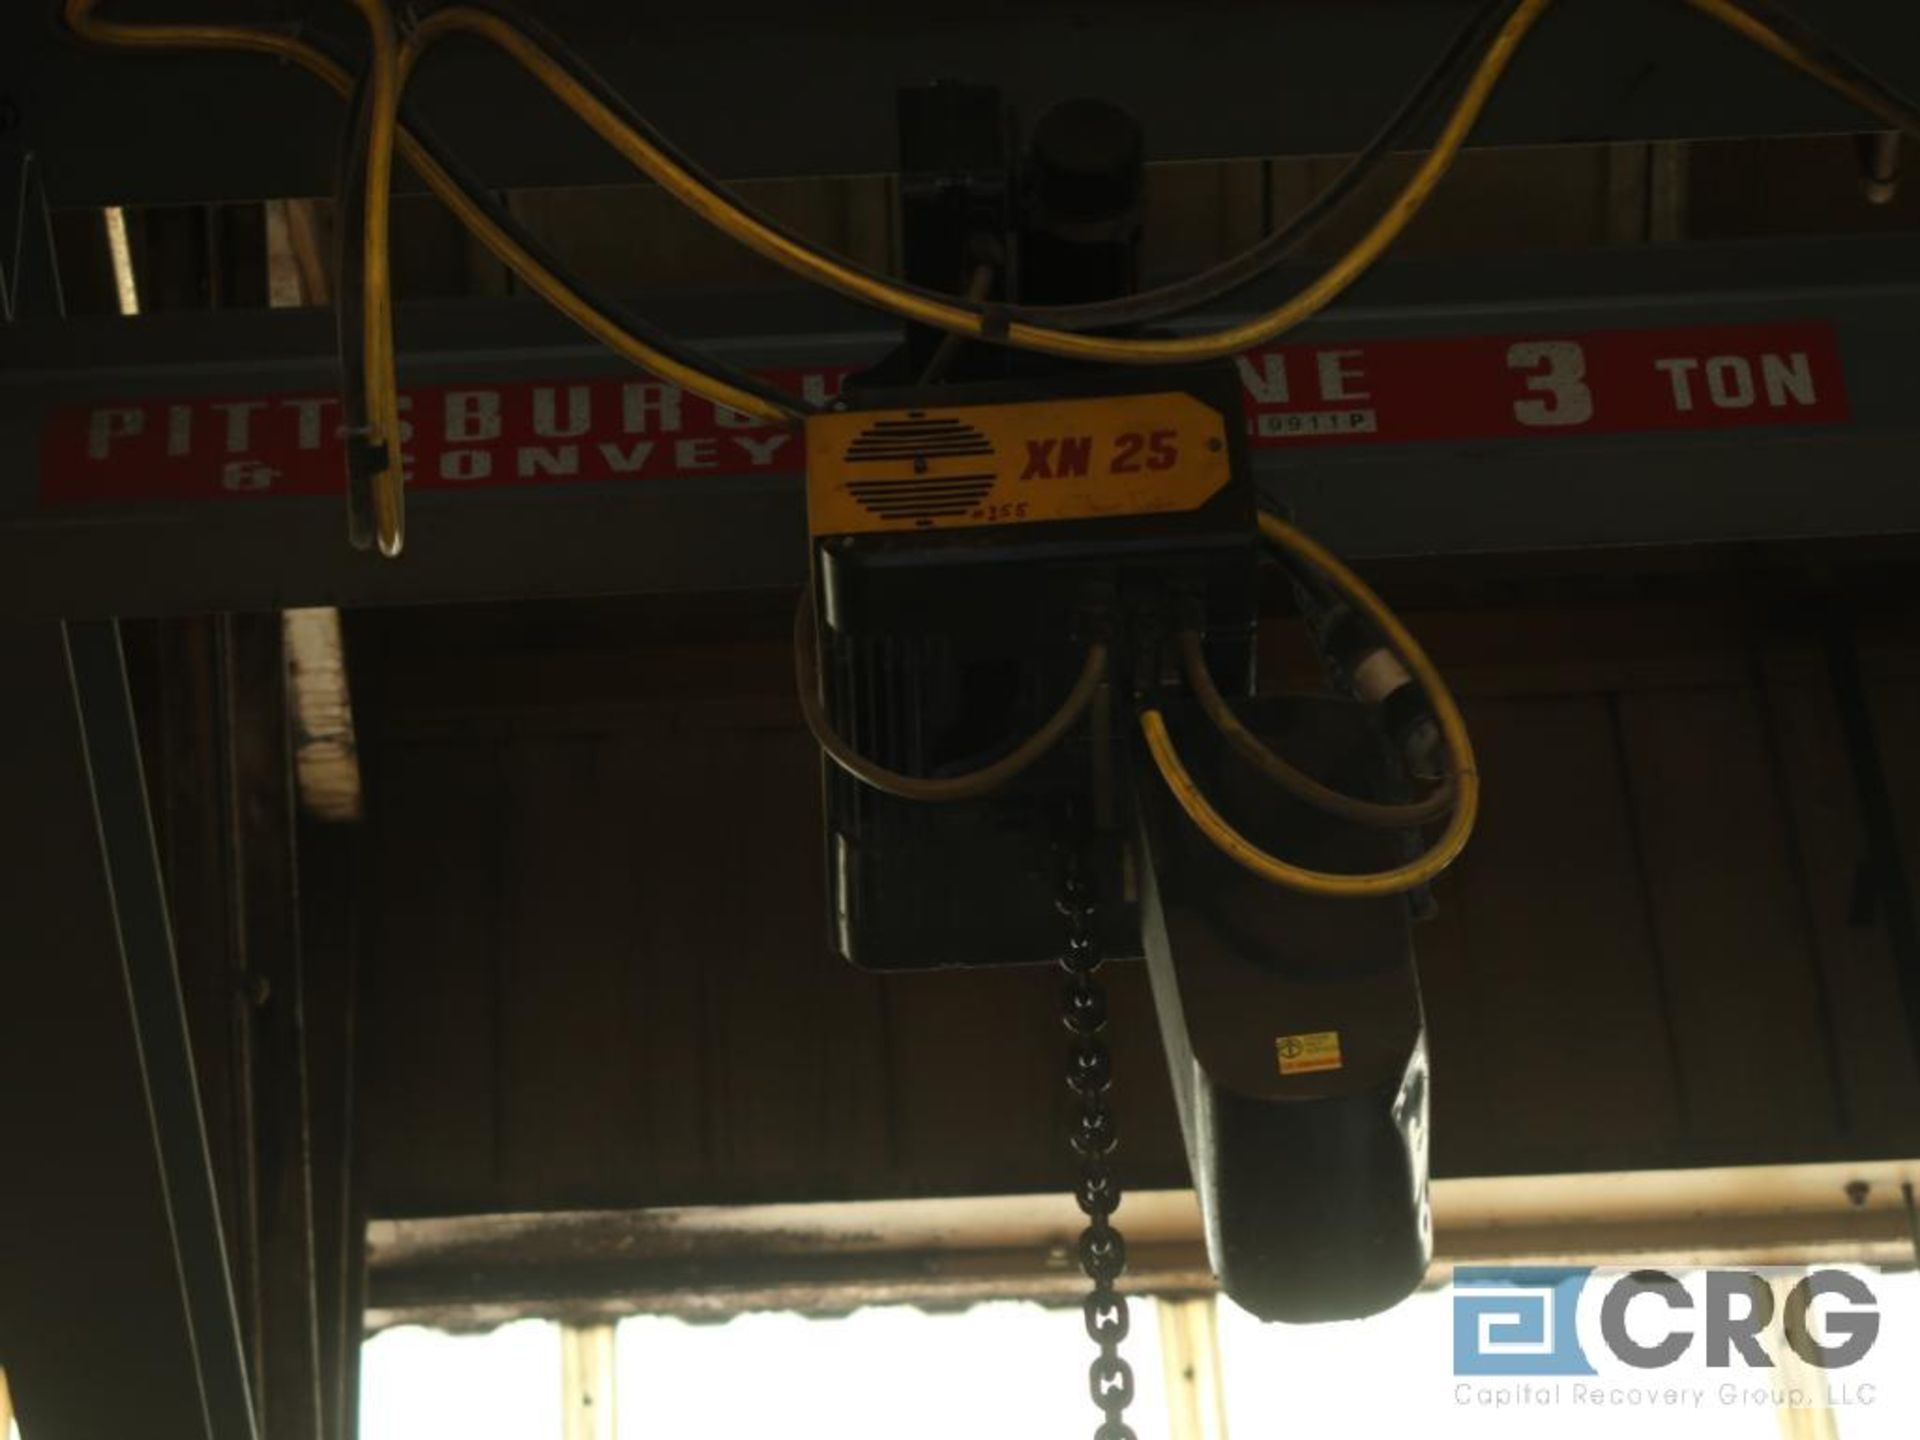 Konecranes XN25 electric hoist, 3 ton cap., hoist only, no beam-LATE DELIVERY (Located on Level